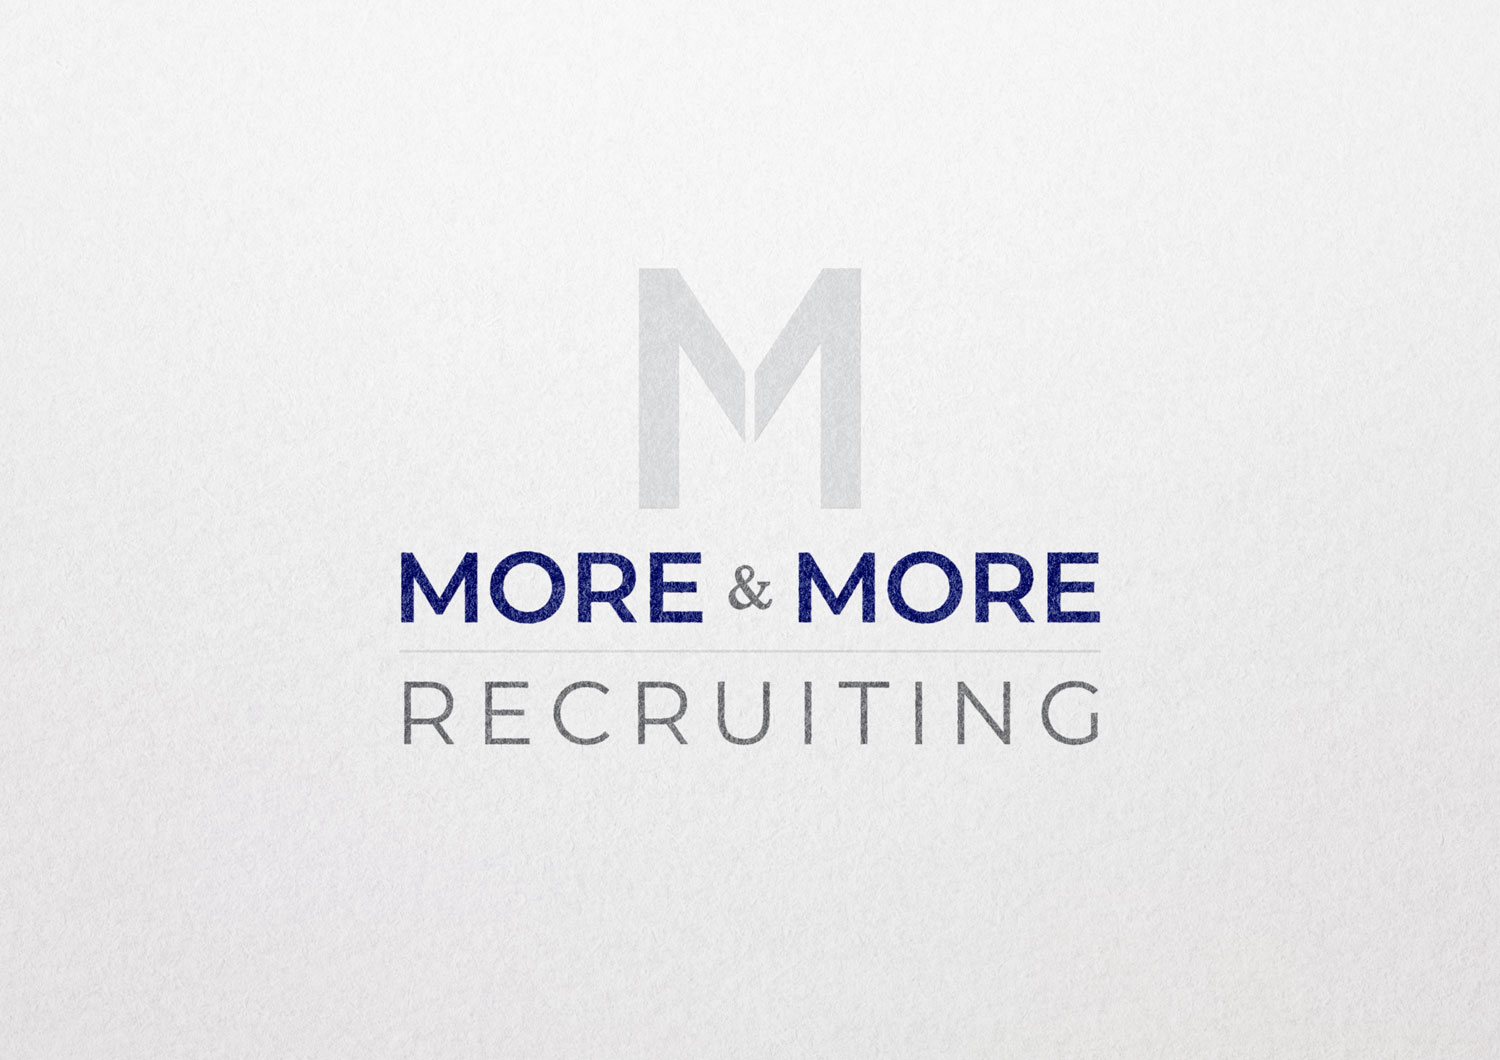 more and more recruiting logo